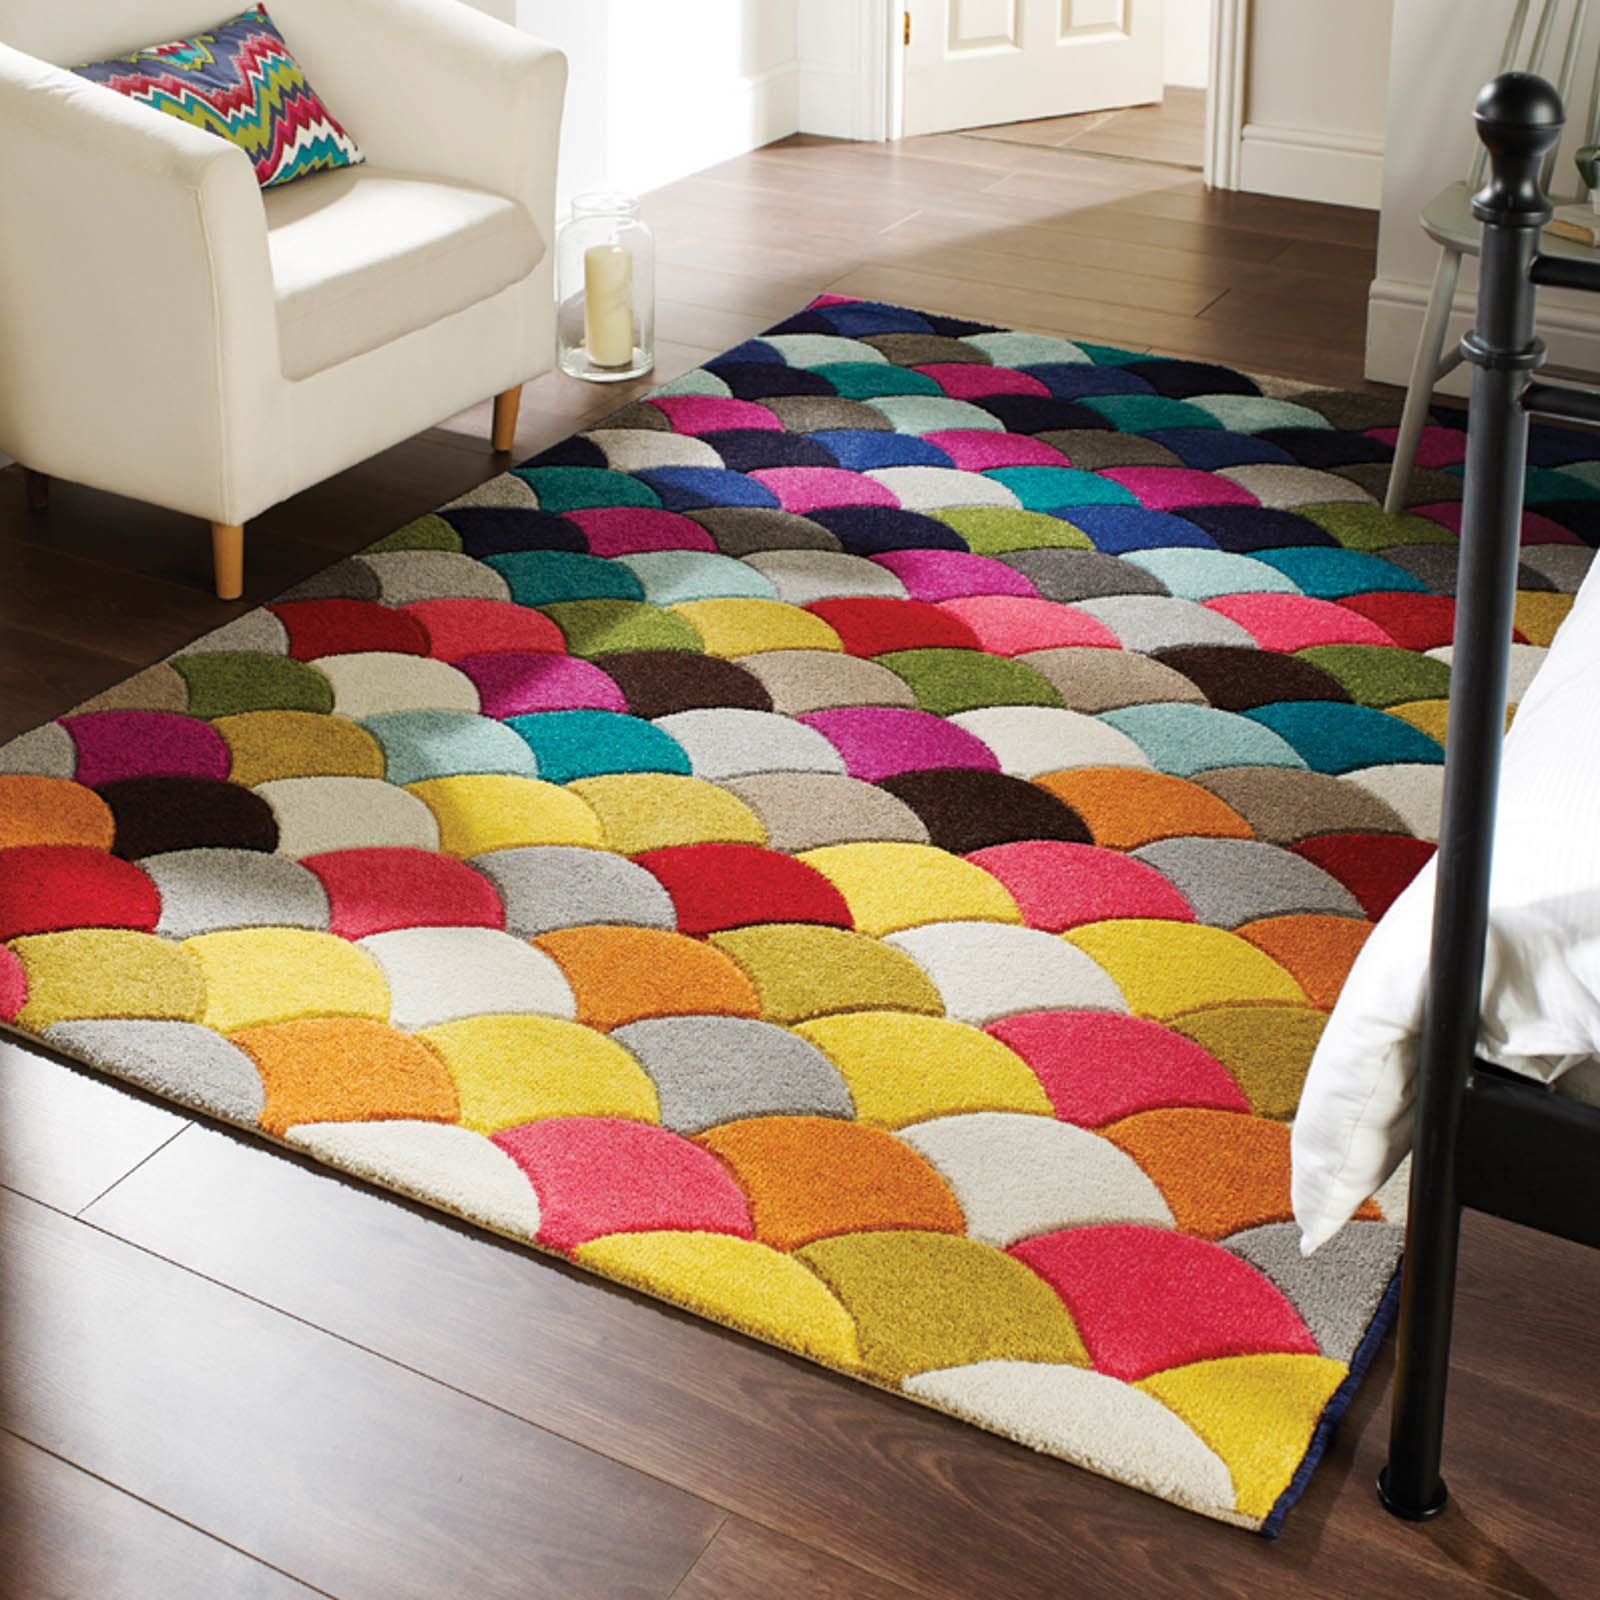 5099e7b5060 Spectrum Rhumba Multicoloured Rugs - Free UK Delivery - The Rug Seller